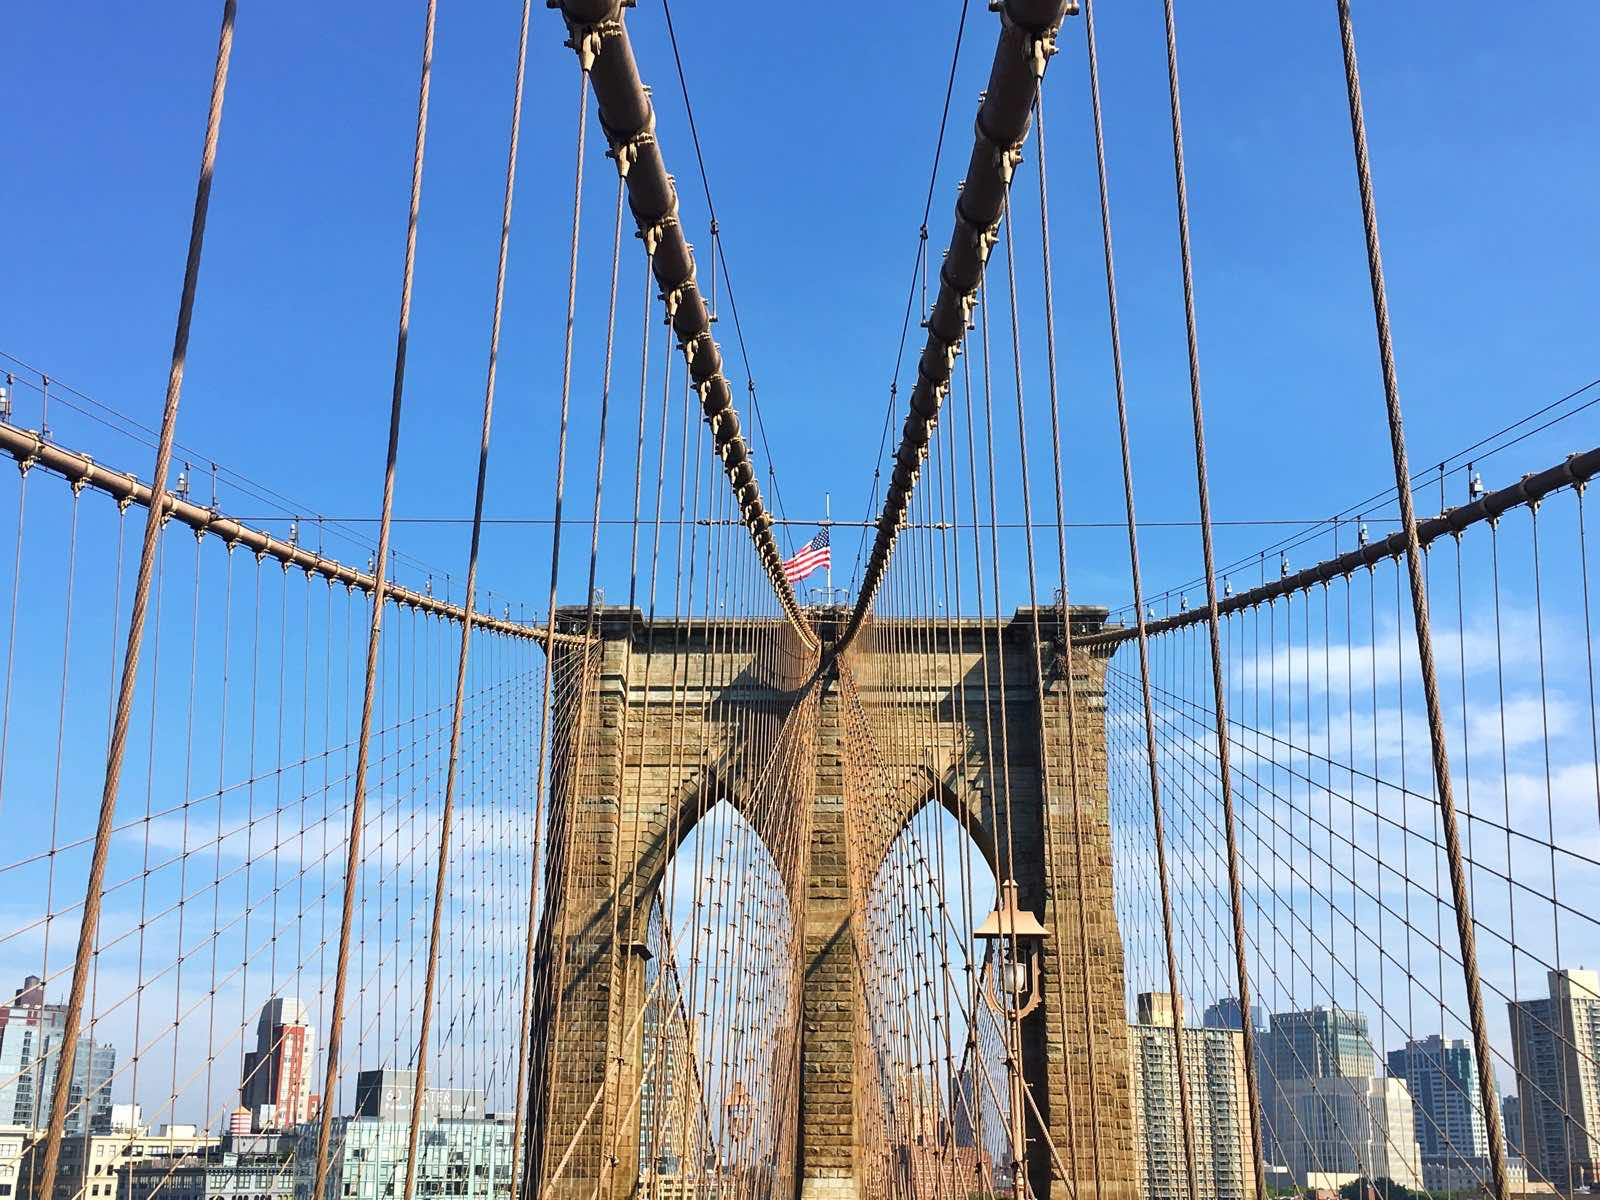 nyc-on-a-budget-brooklyn-bridge